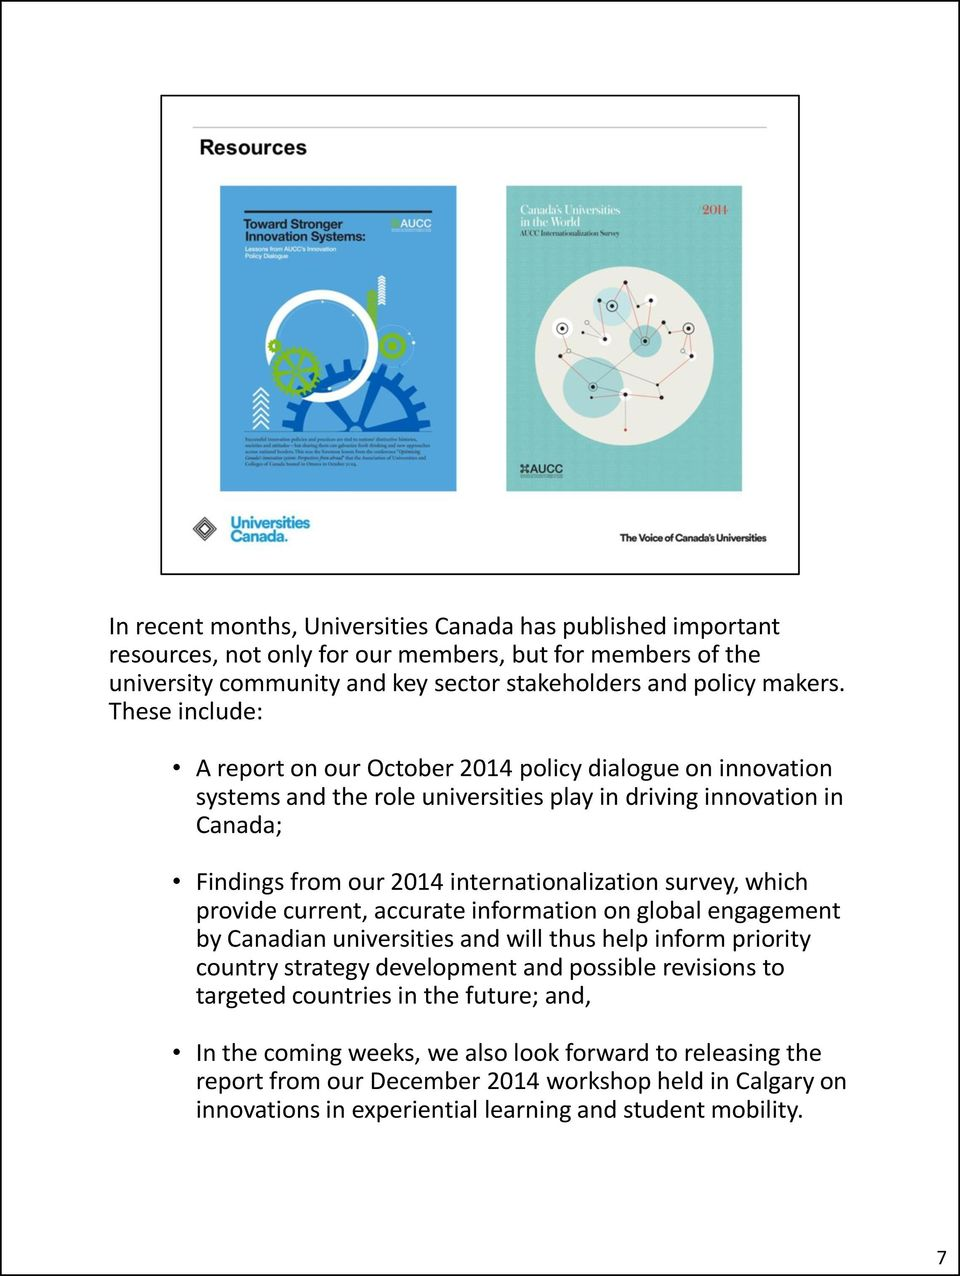 survey, which provide current, accurate information on global engagement by Canadian universities and will thus help inform priority country strategy development and possible revisions to